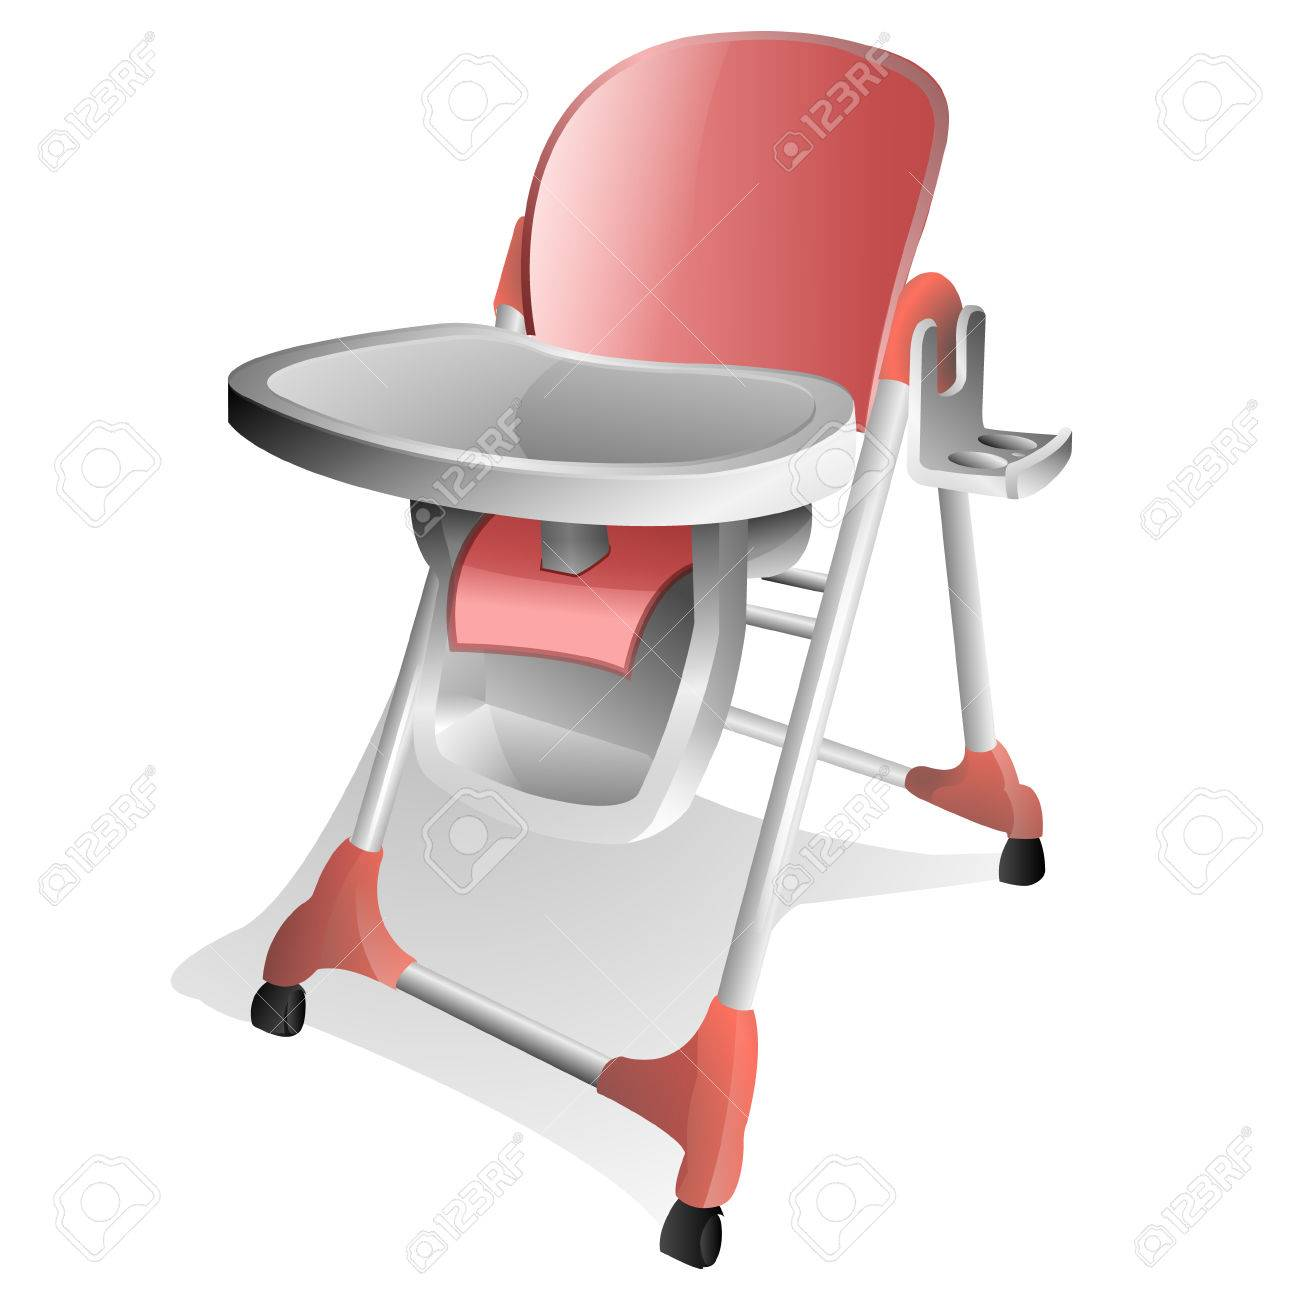 Pink and White Baby High Chair with Tray Stock Vector - 7779006 And With Royalty Free Cliparts